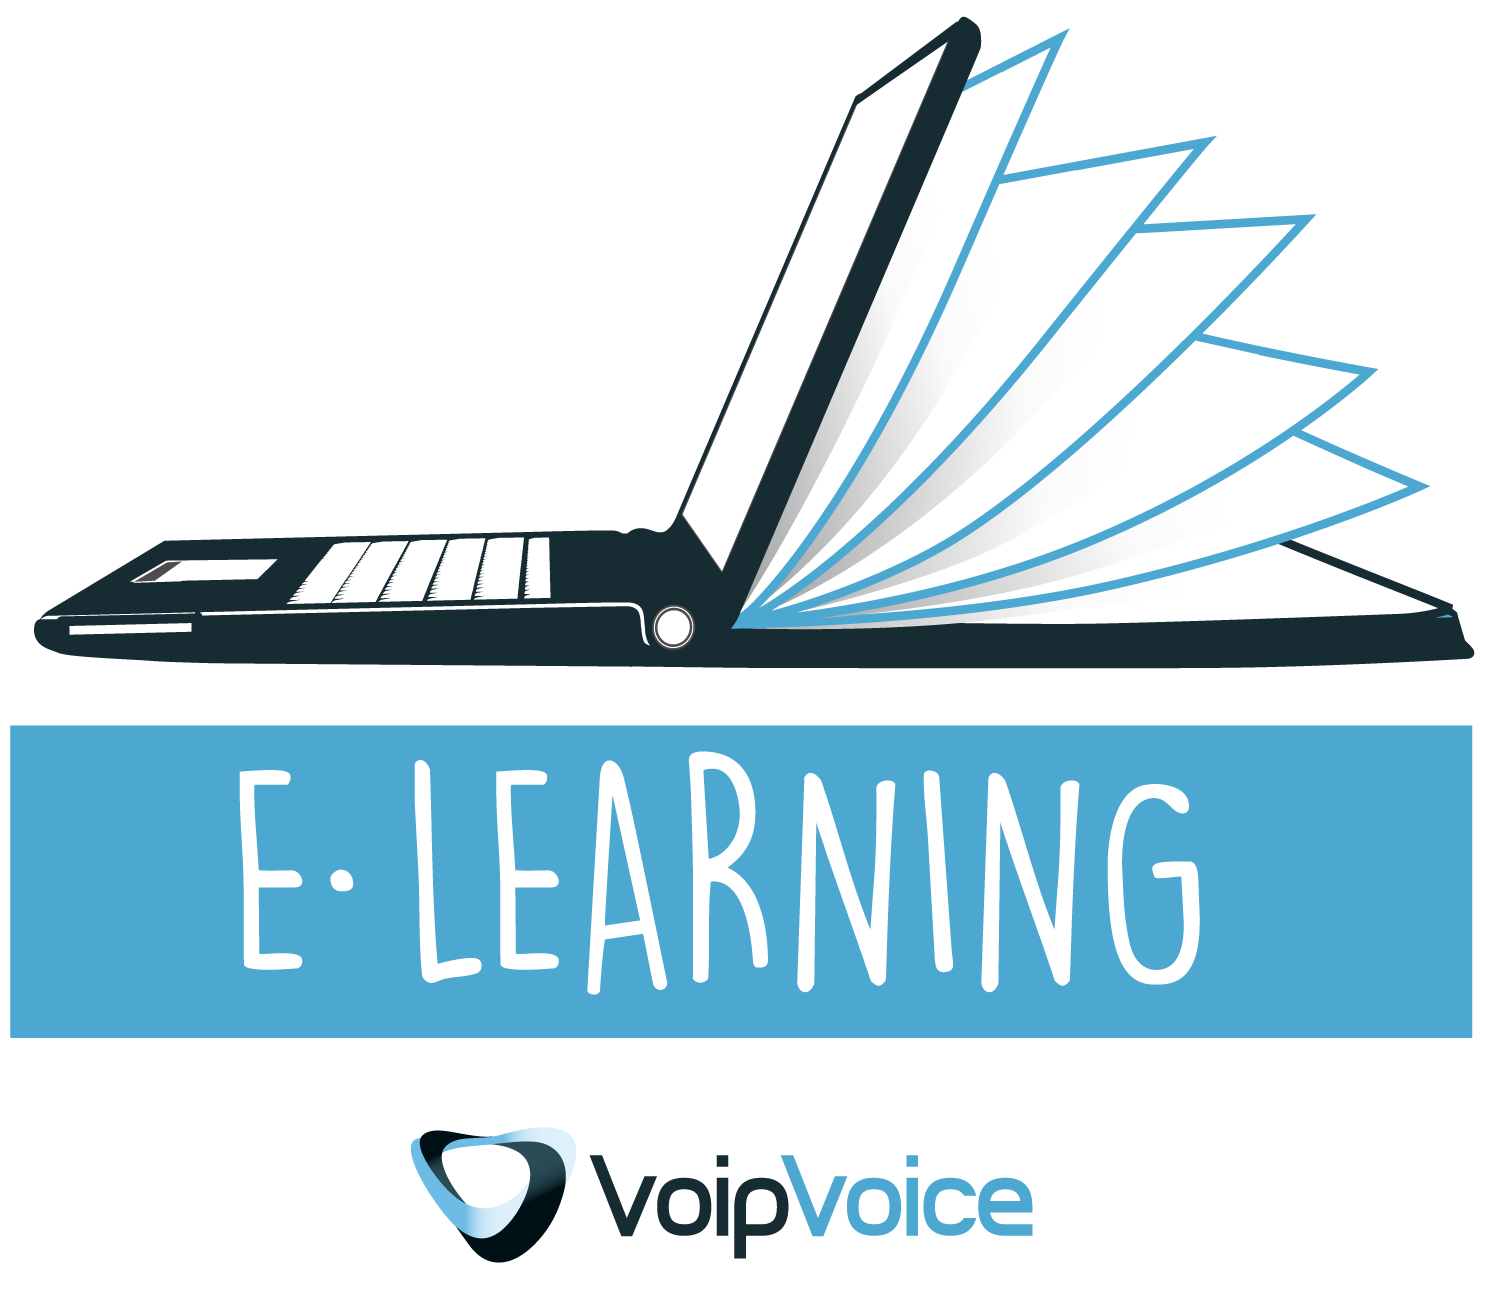 Progetto e-learning VoipVoice